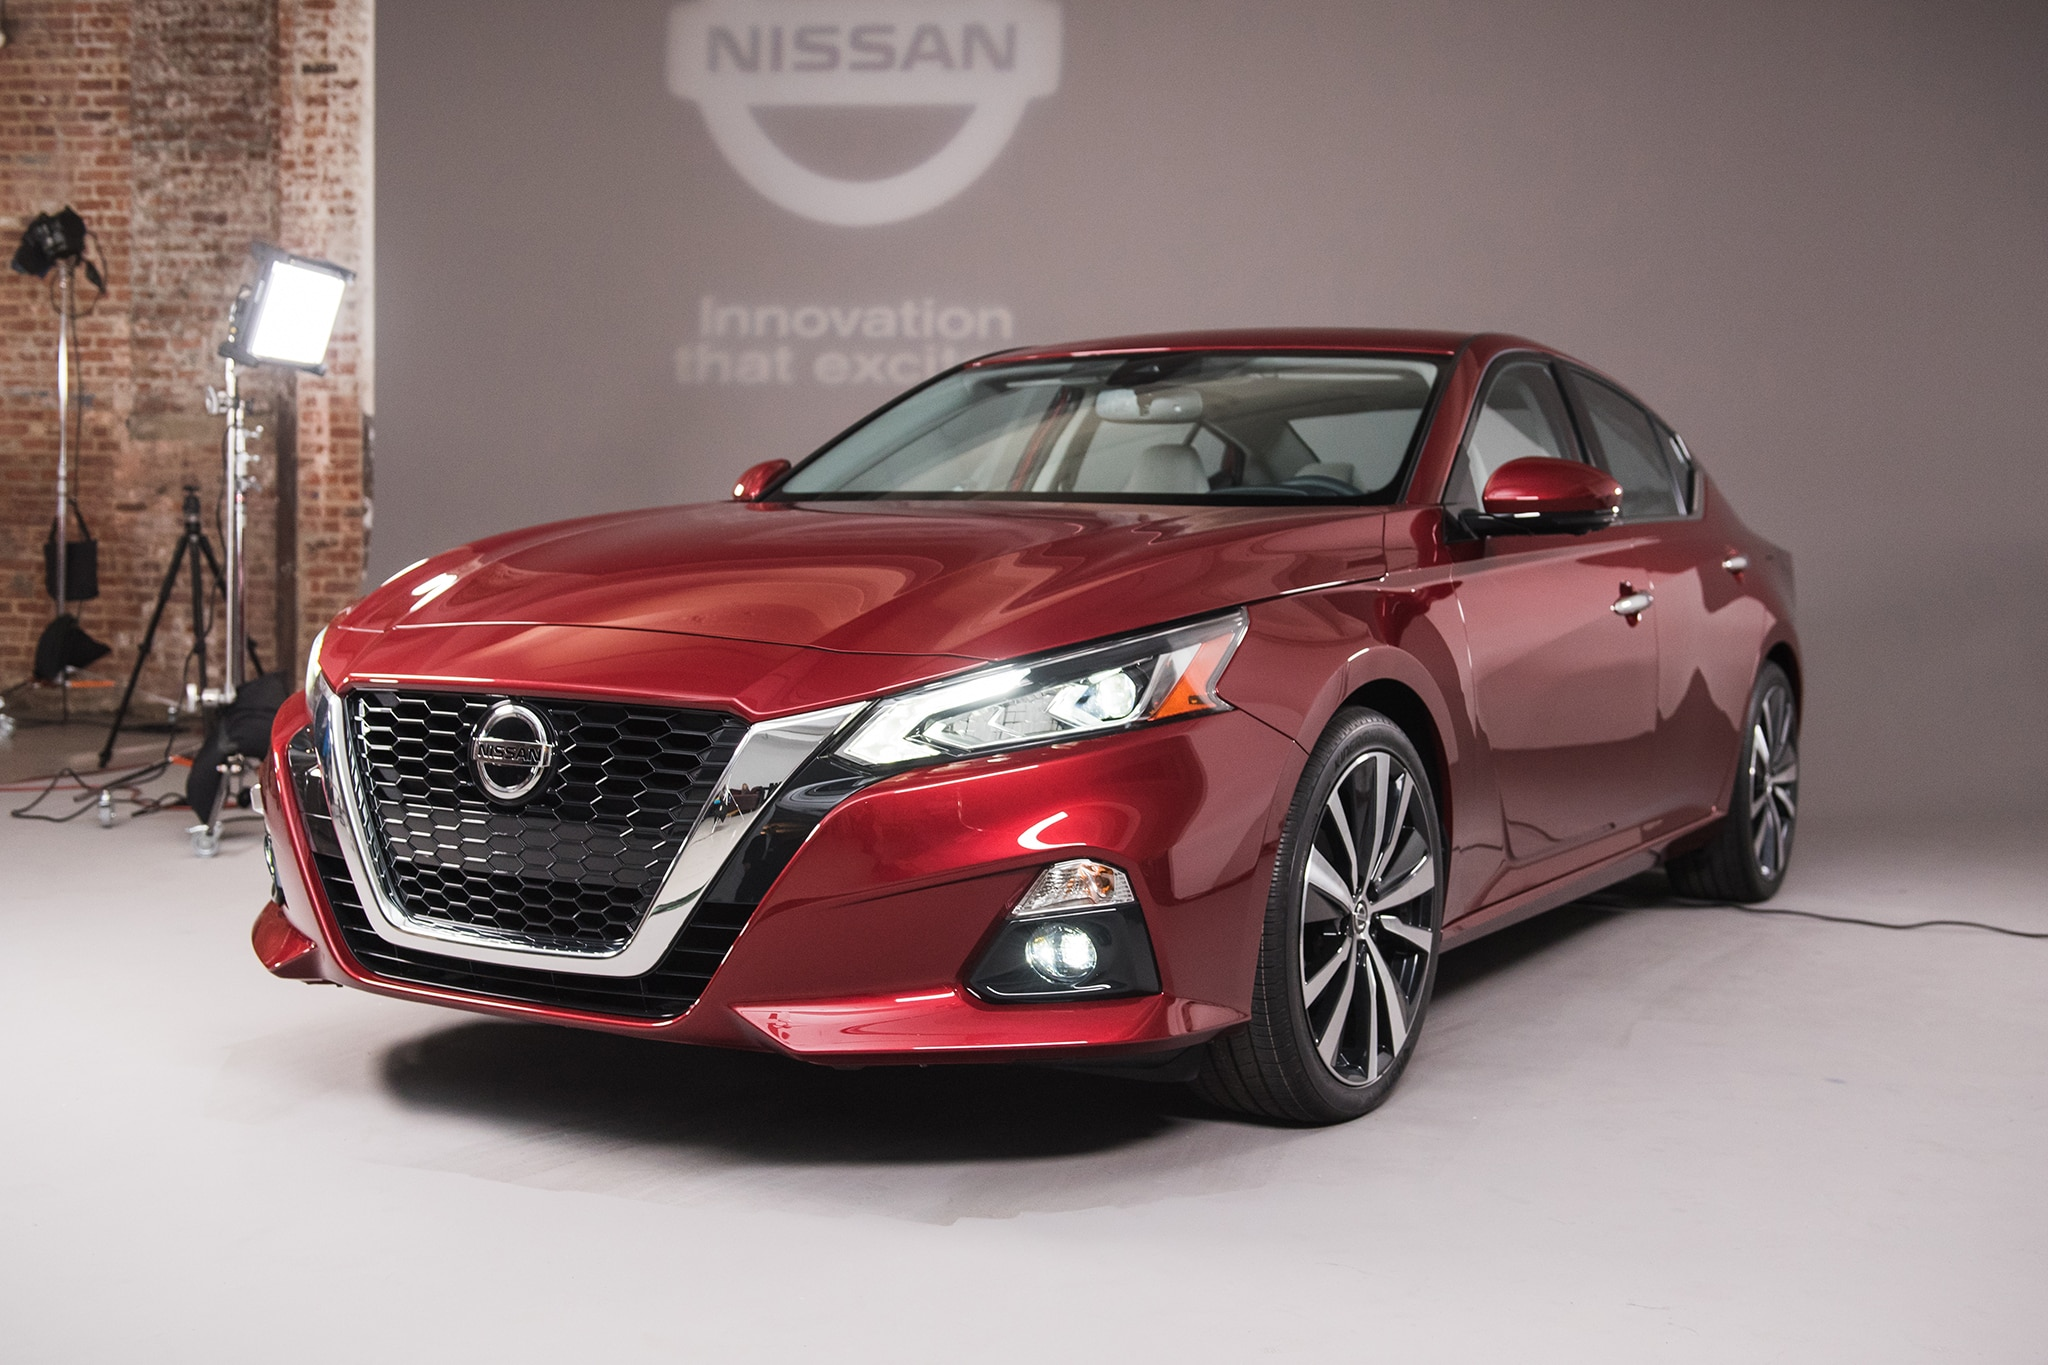 2019 nissan altima returns to battle automobile magazine. Black Bedroom Furniture Sets. Home Design Ideas